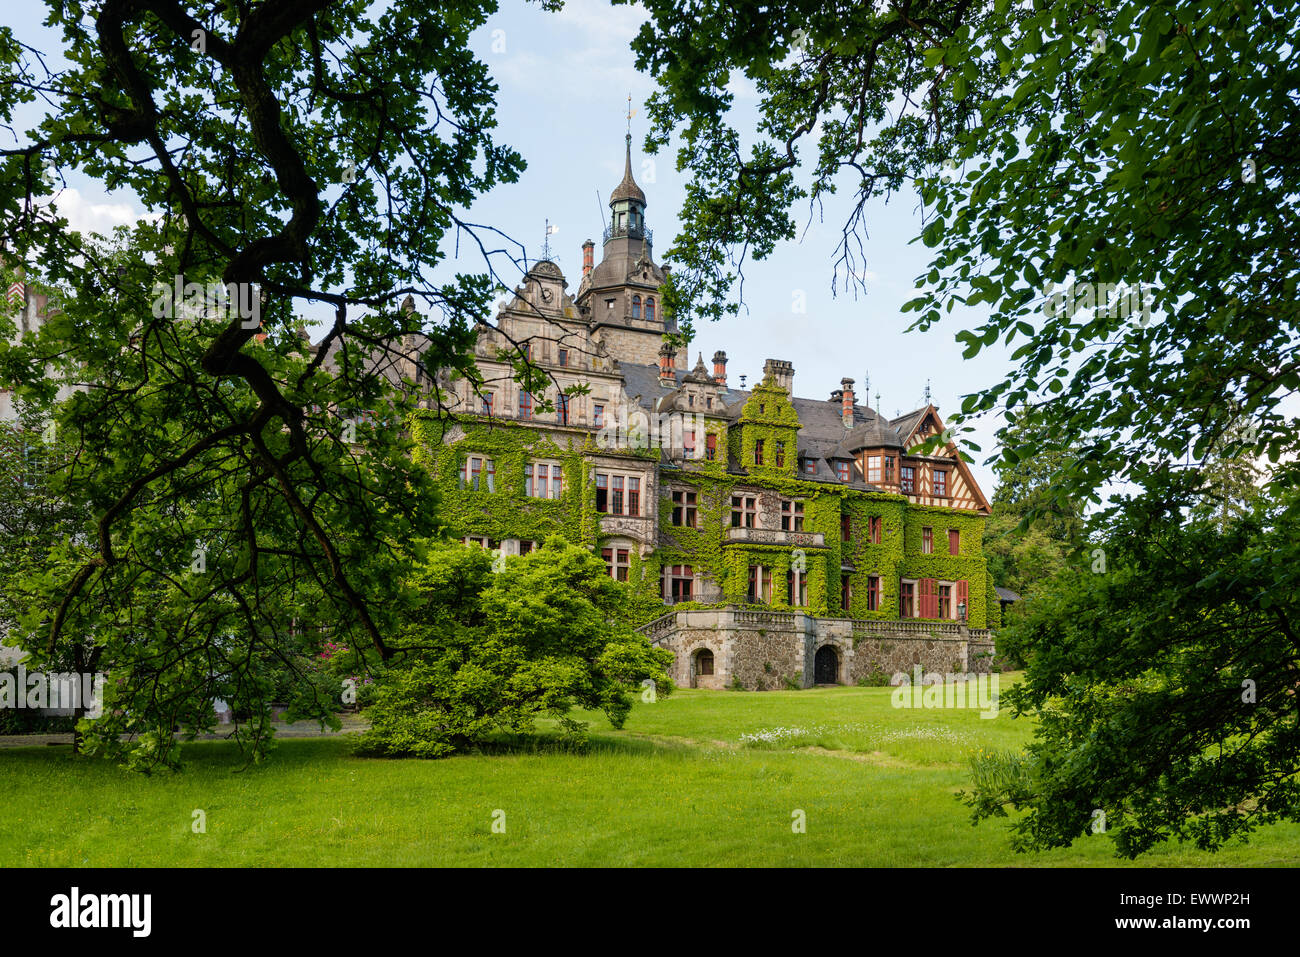 Exterior facade of the imposing Schloss Ramholz - Stock Image